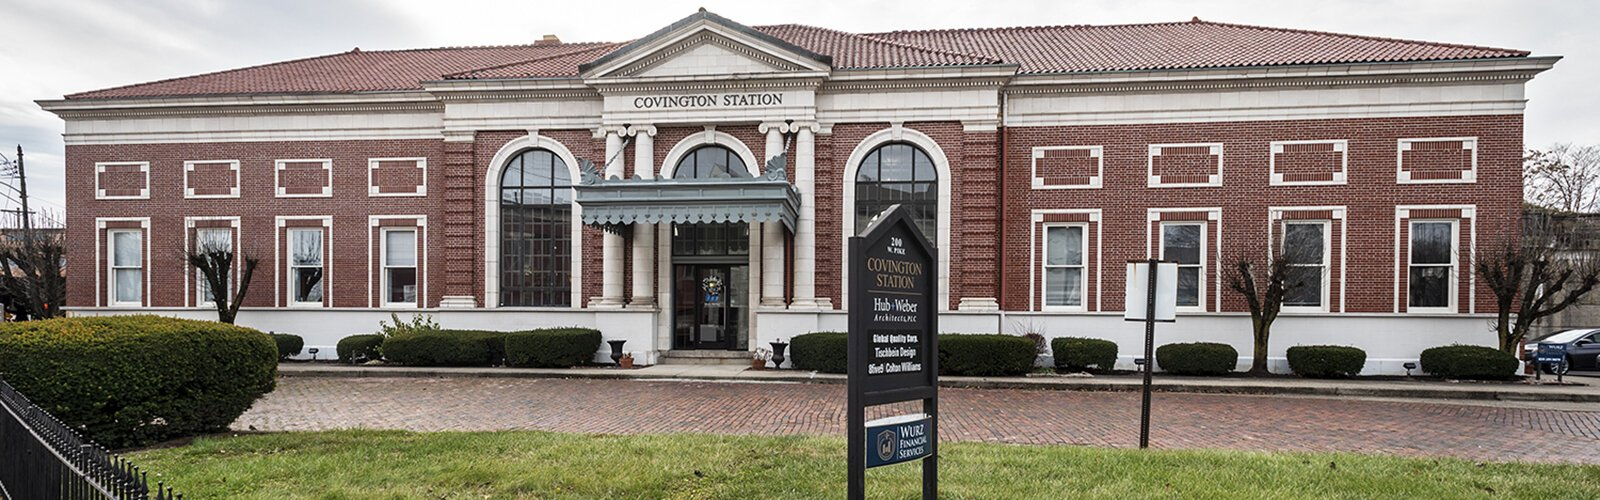 Covington Station once served as the city's main stop for passenger rail service and had separate entrances for white and black travelers.